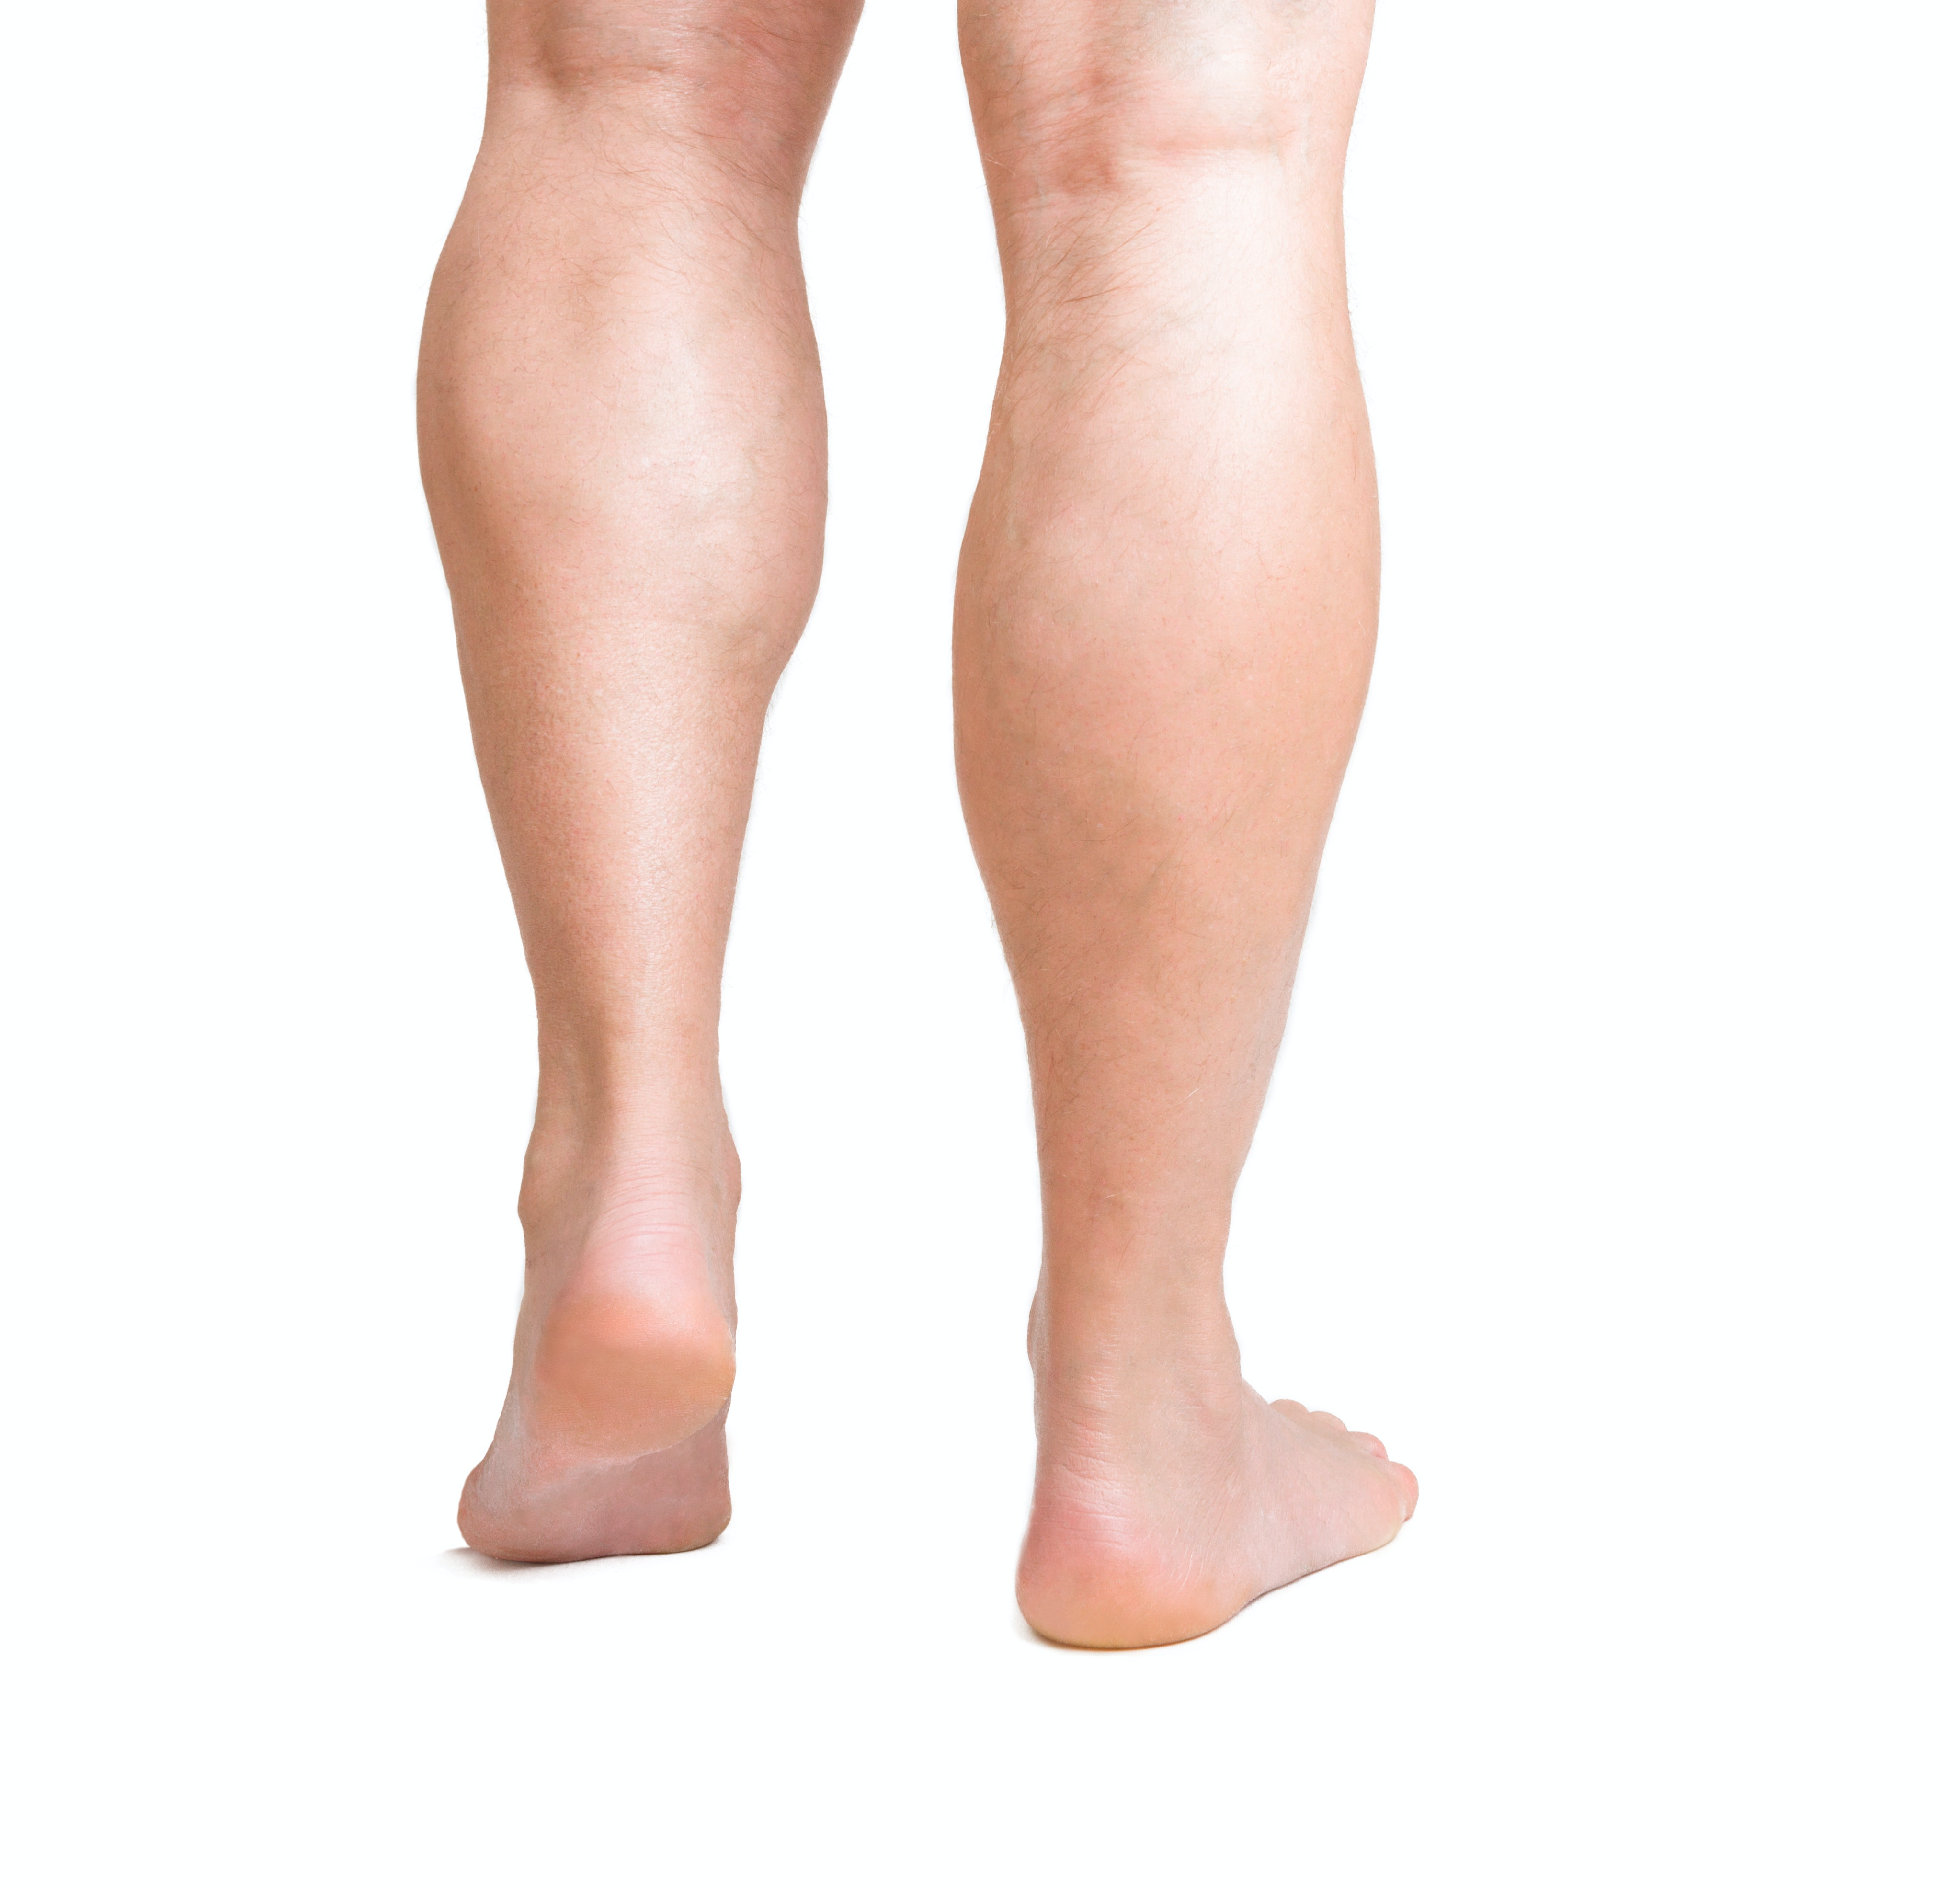 An image depicting a person suffering from lower leg bump symptoms